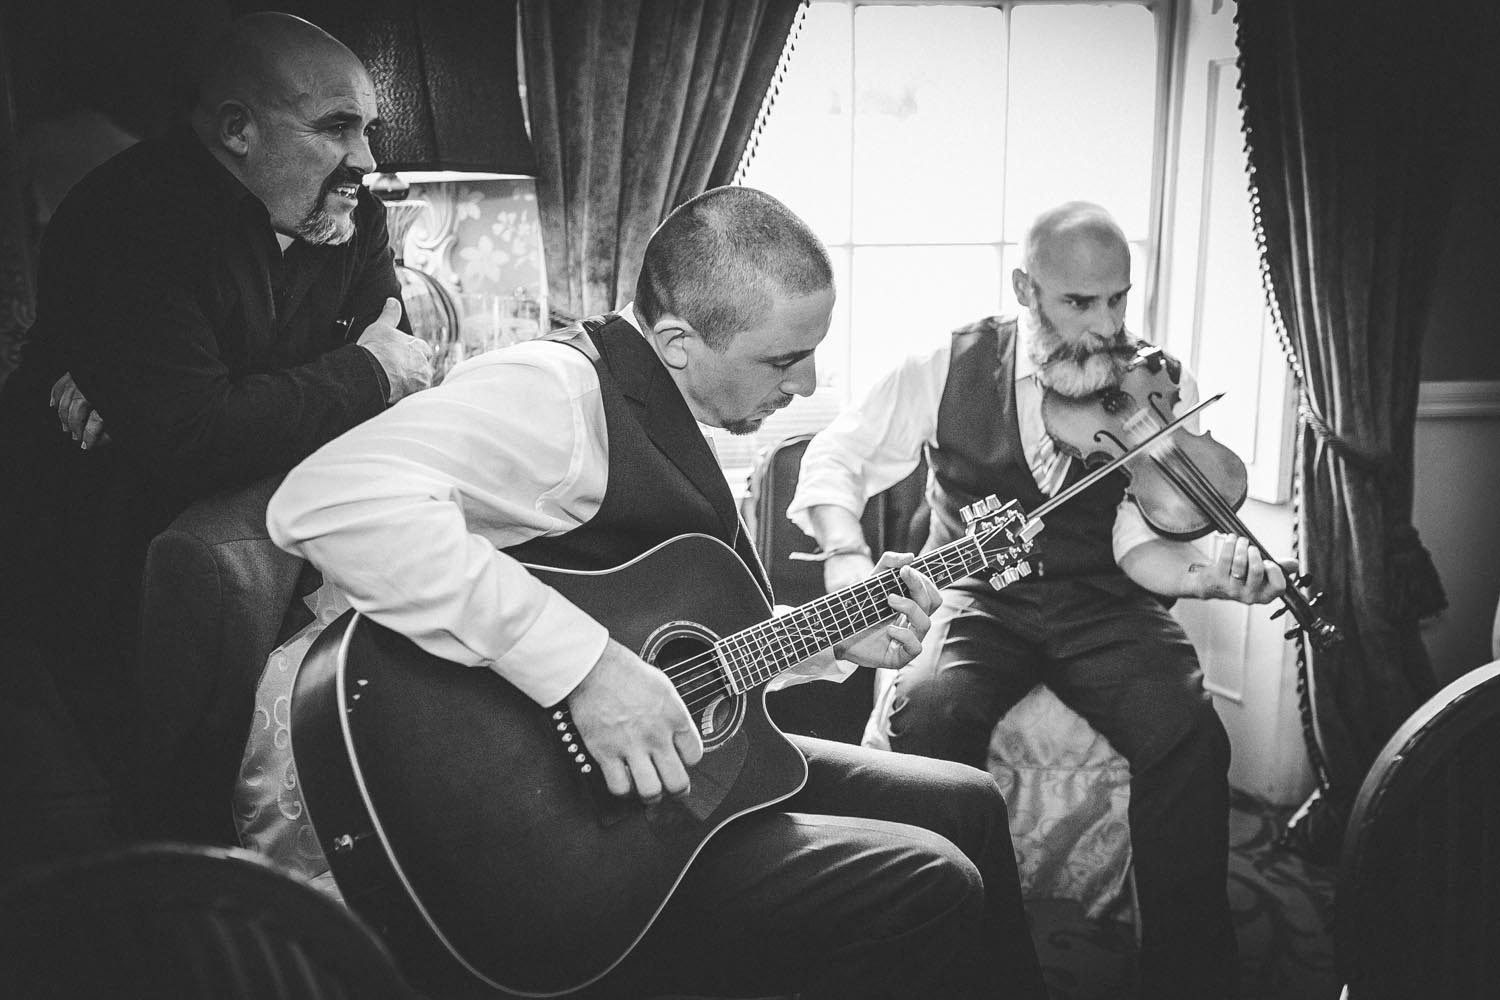 Step House wedding photographer Carlow Borris104.jpg